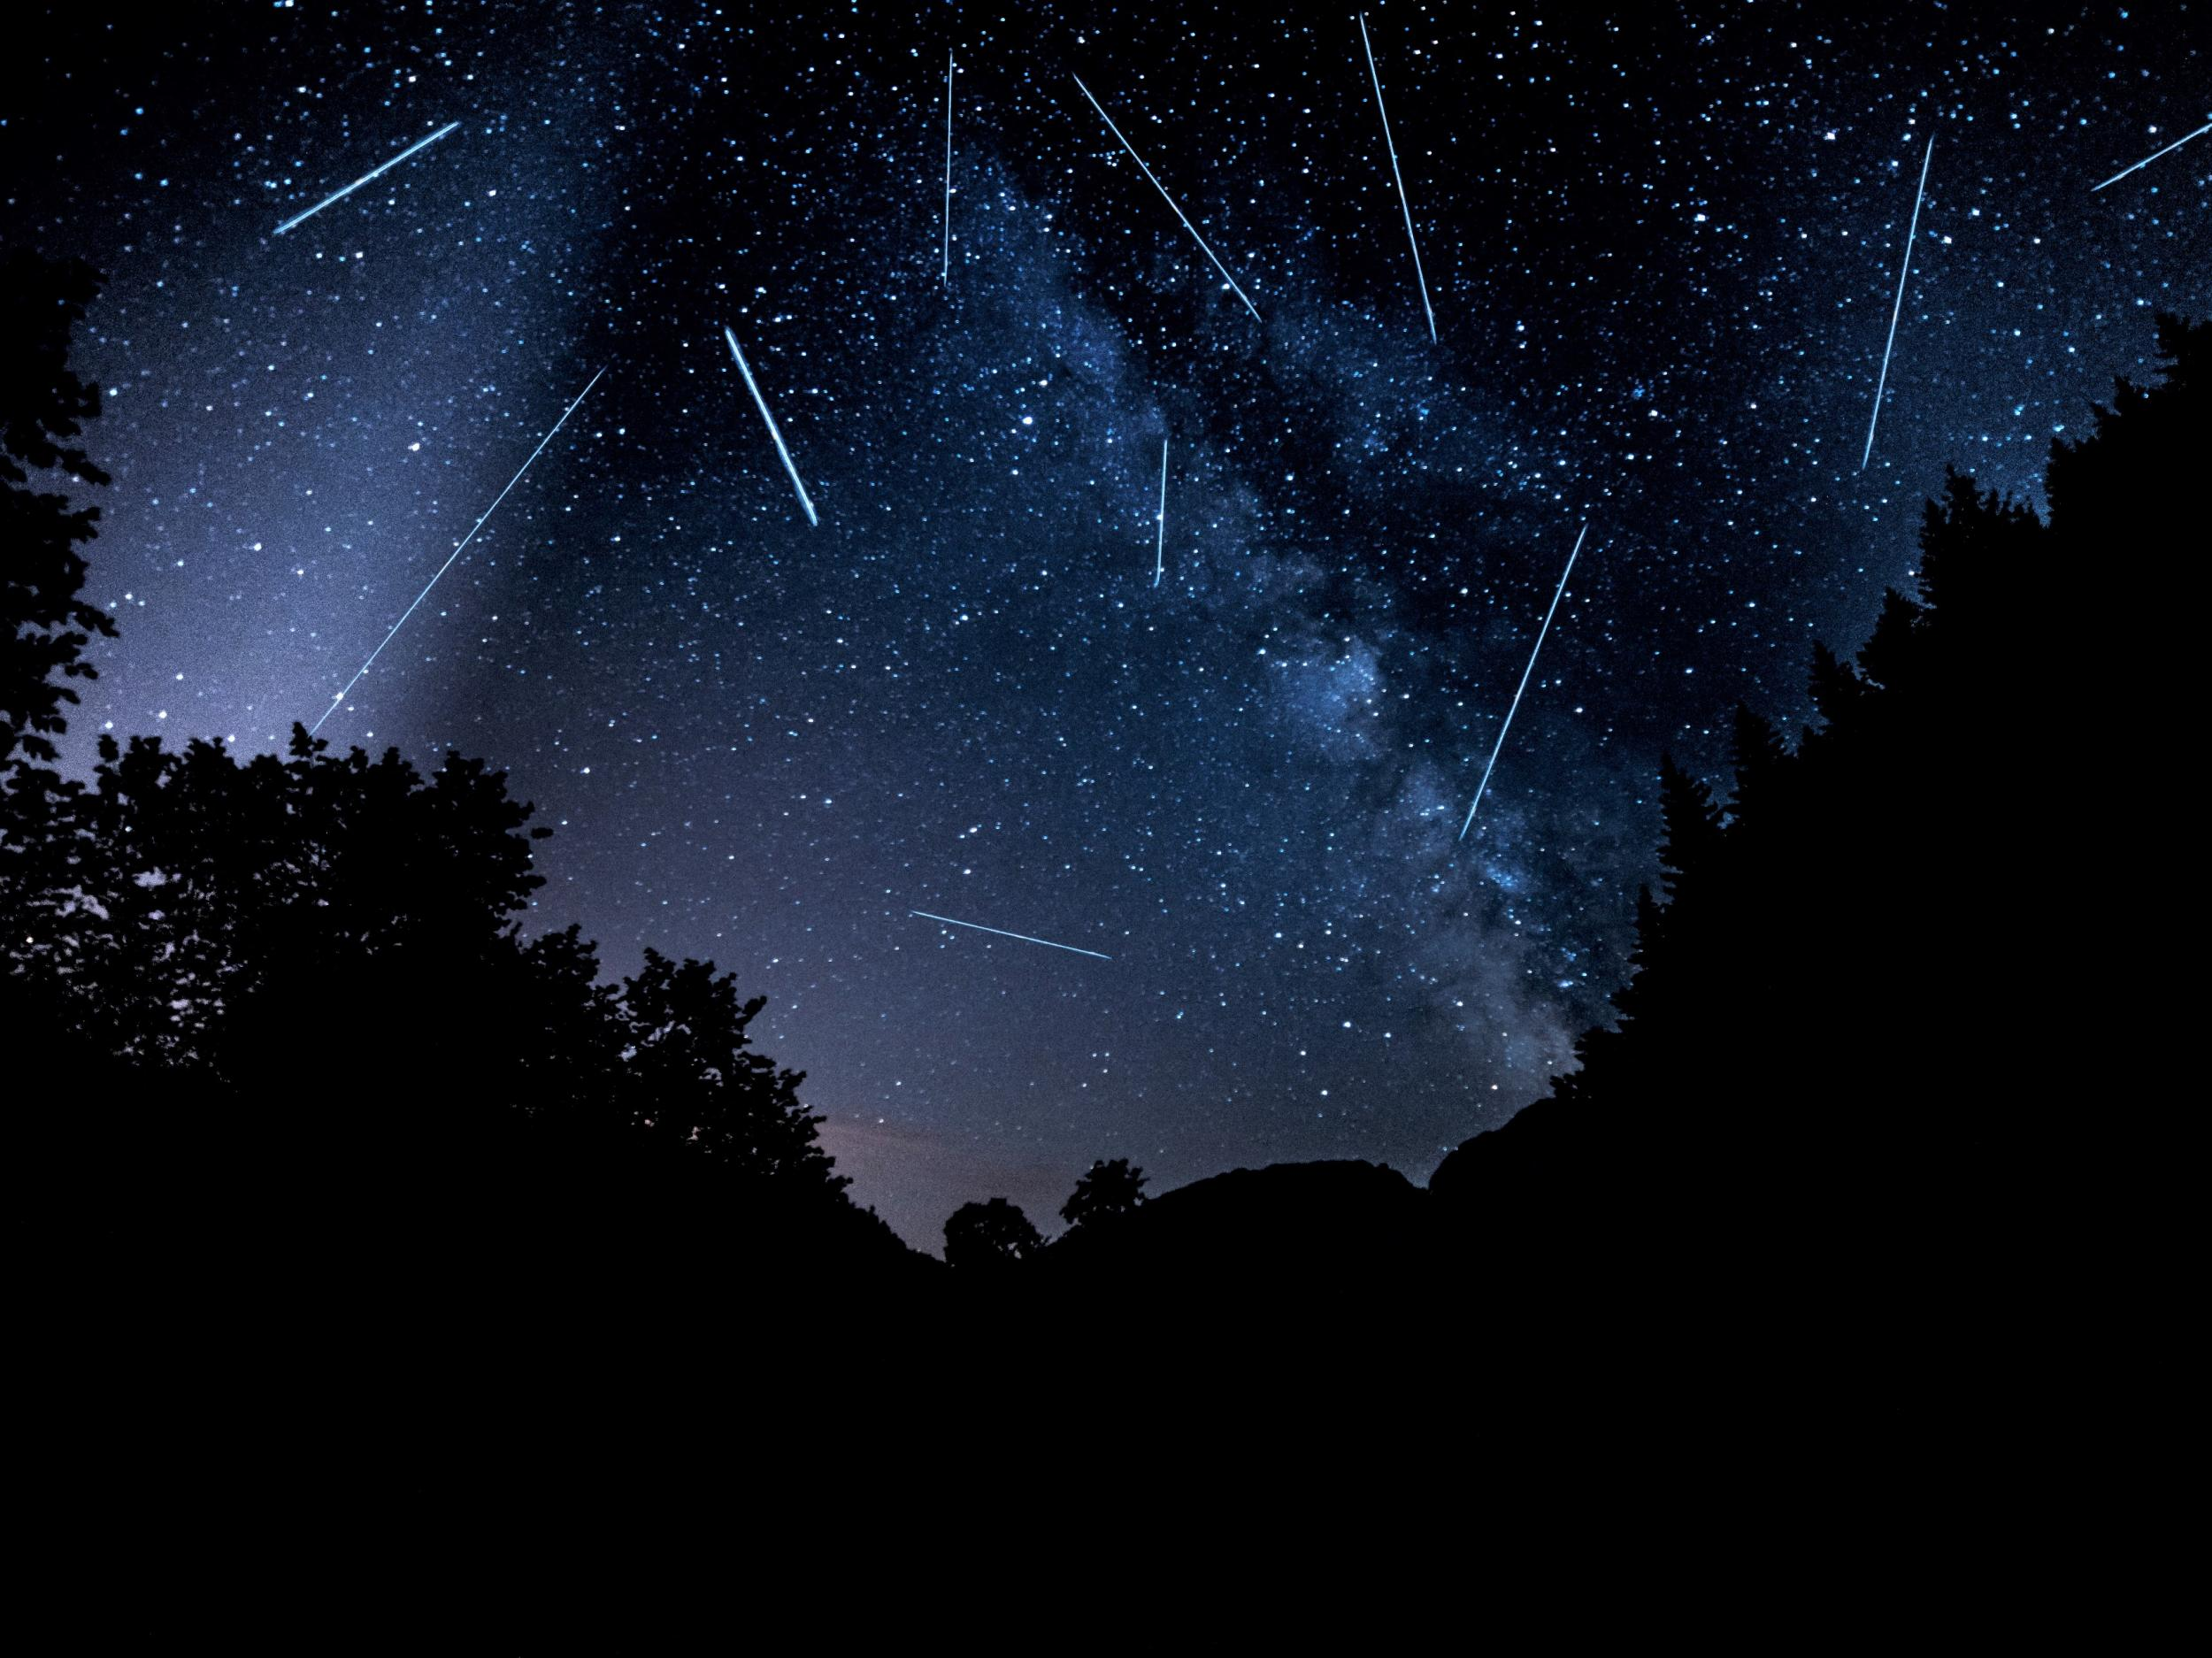 The Draconids meteor shower is going to light up the sky with shooting stars tonight